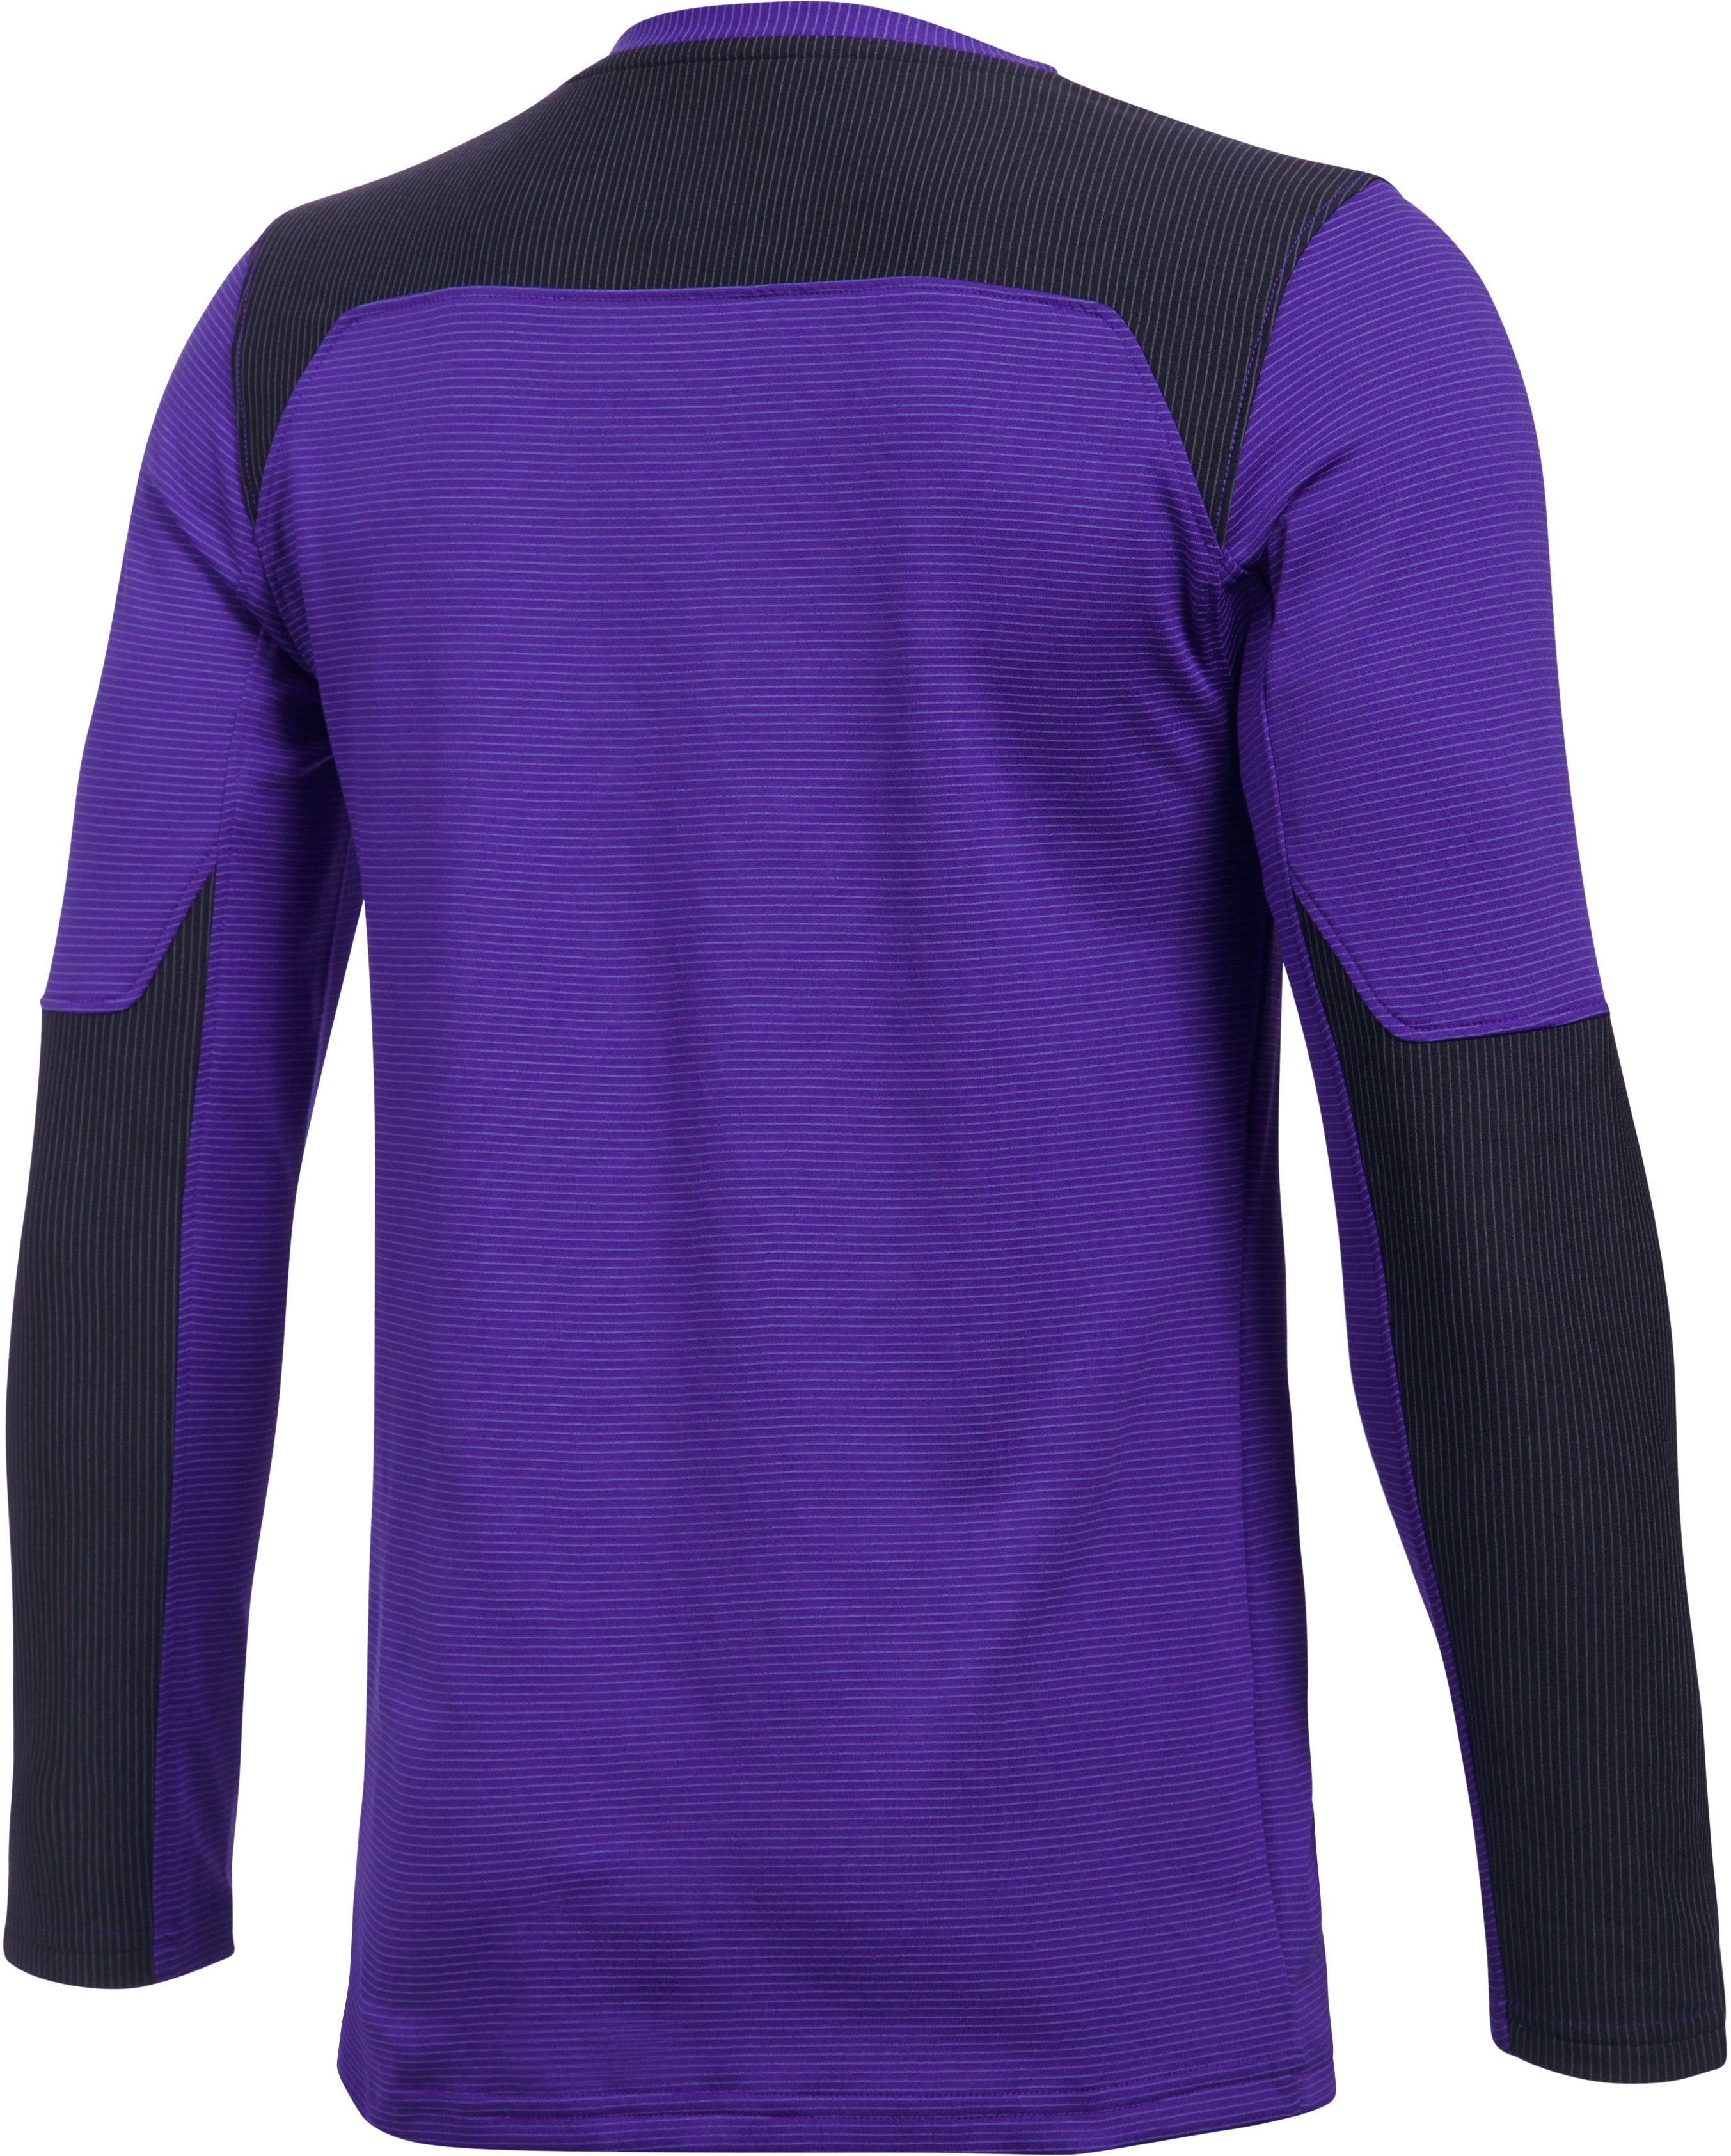 Kids' UA Threadborne Wall Goalkeeper Jersey, PURPLE ZEST, undefined